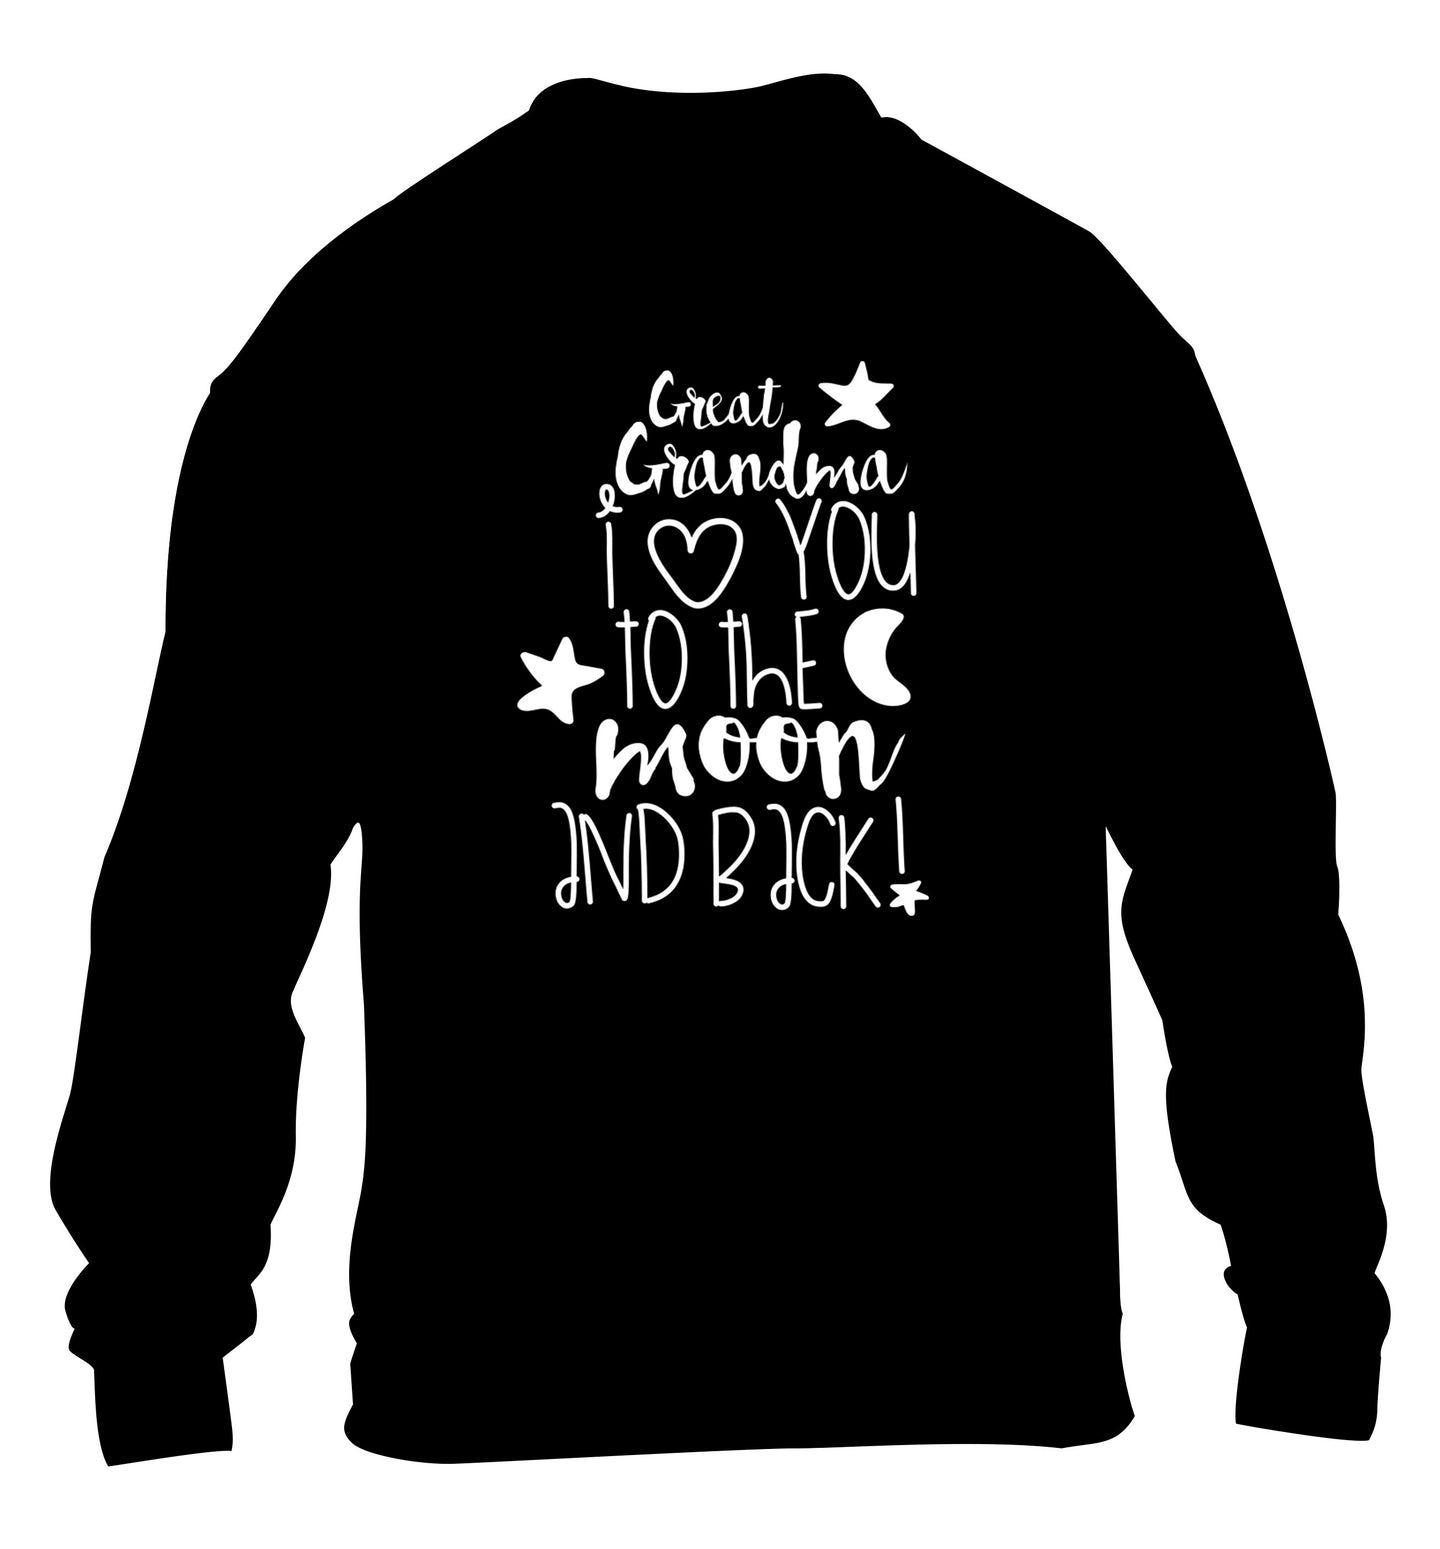 Great Grandma I love you to the moon and back children's black  sweater 12-14 Years